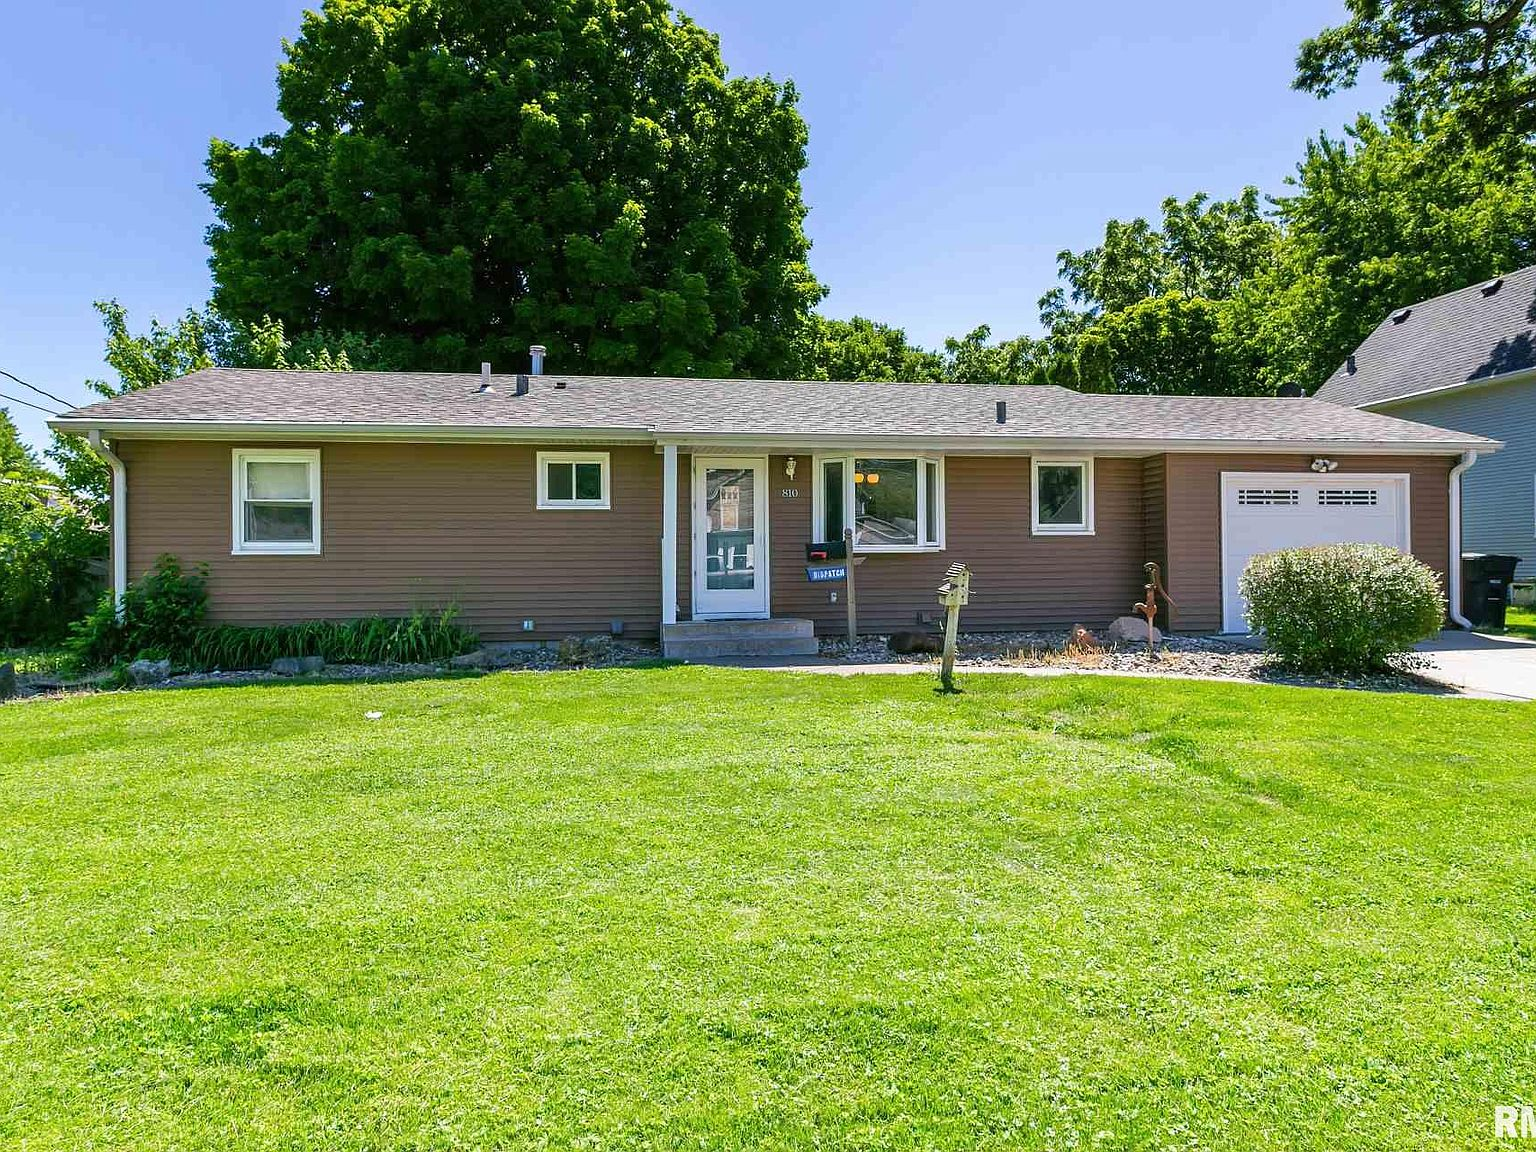 810 42nd St Moline Il 61265 Zillow